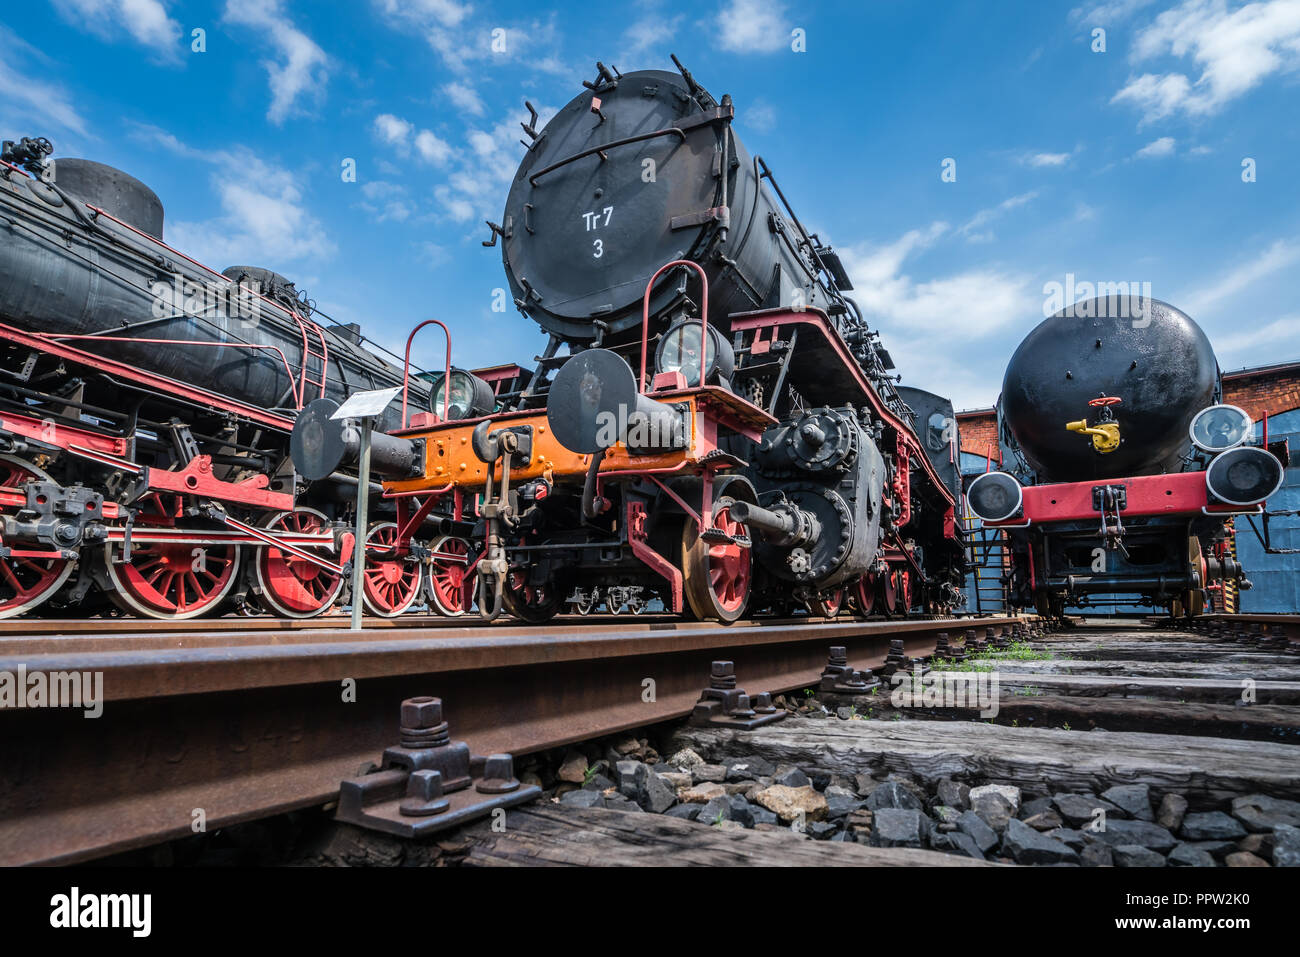 Jaworzyna Slaska, Poland - August 2018 : Man with a child looking at the old disused retro train locomotives and carriages on the side tracks in the d - Stock Image